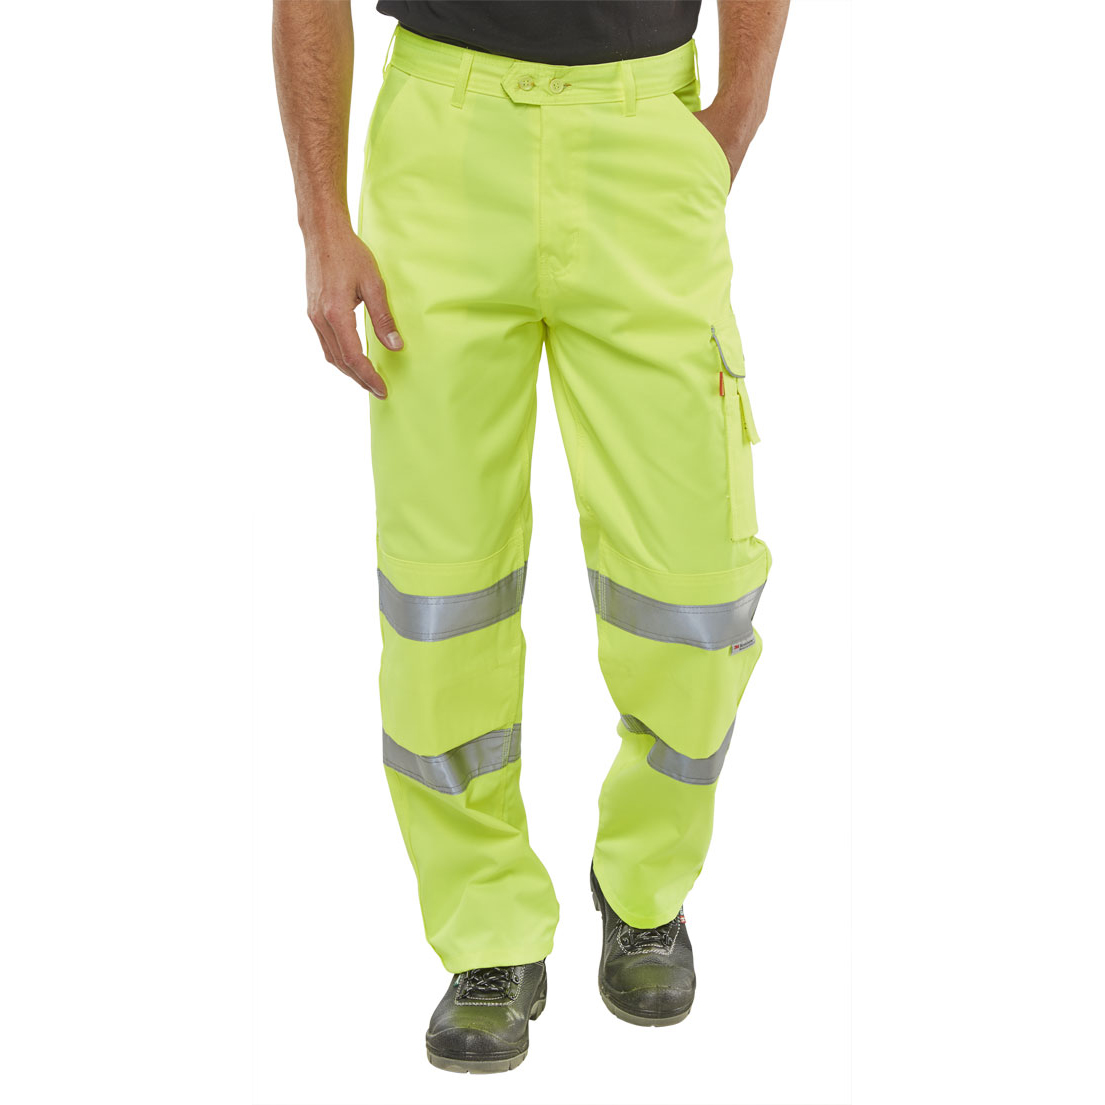 High Visibility BSeen Trousers Polycotton Hi-Vis EN471 Saturn Yellow 32 Ref PCTENSY32 *Up to 3 Day Leadtime*